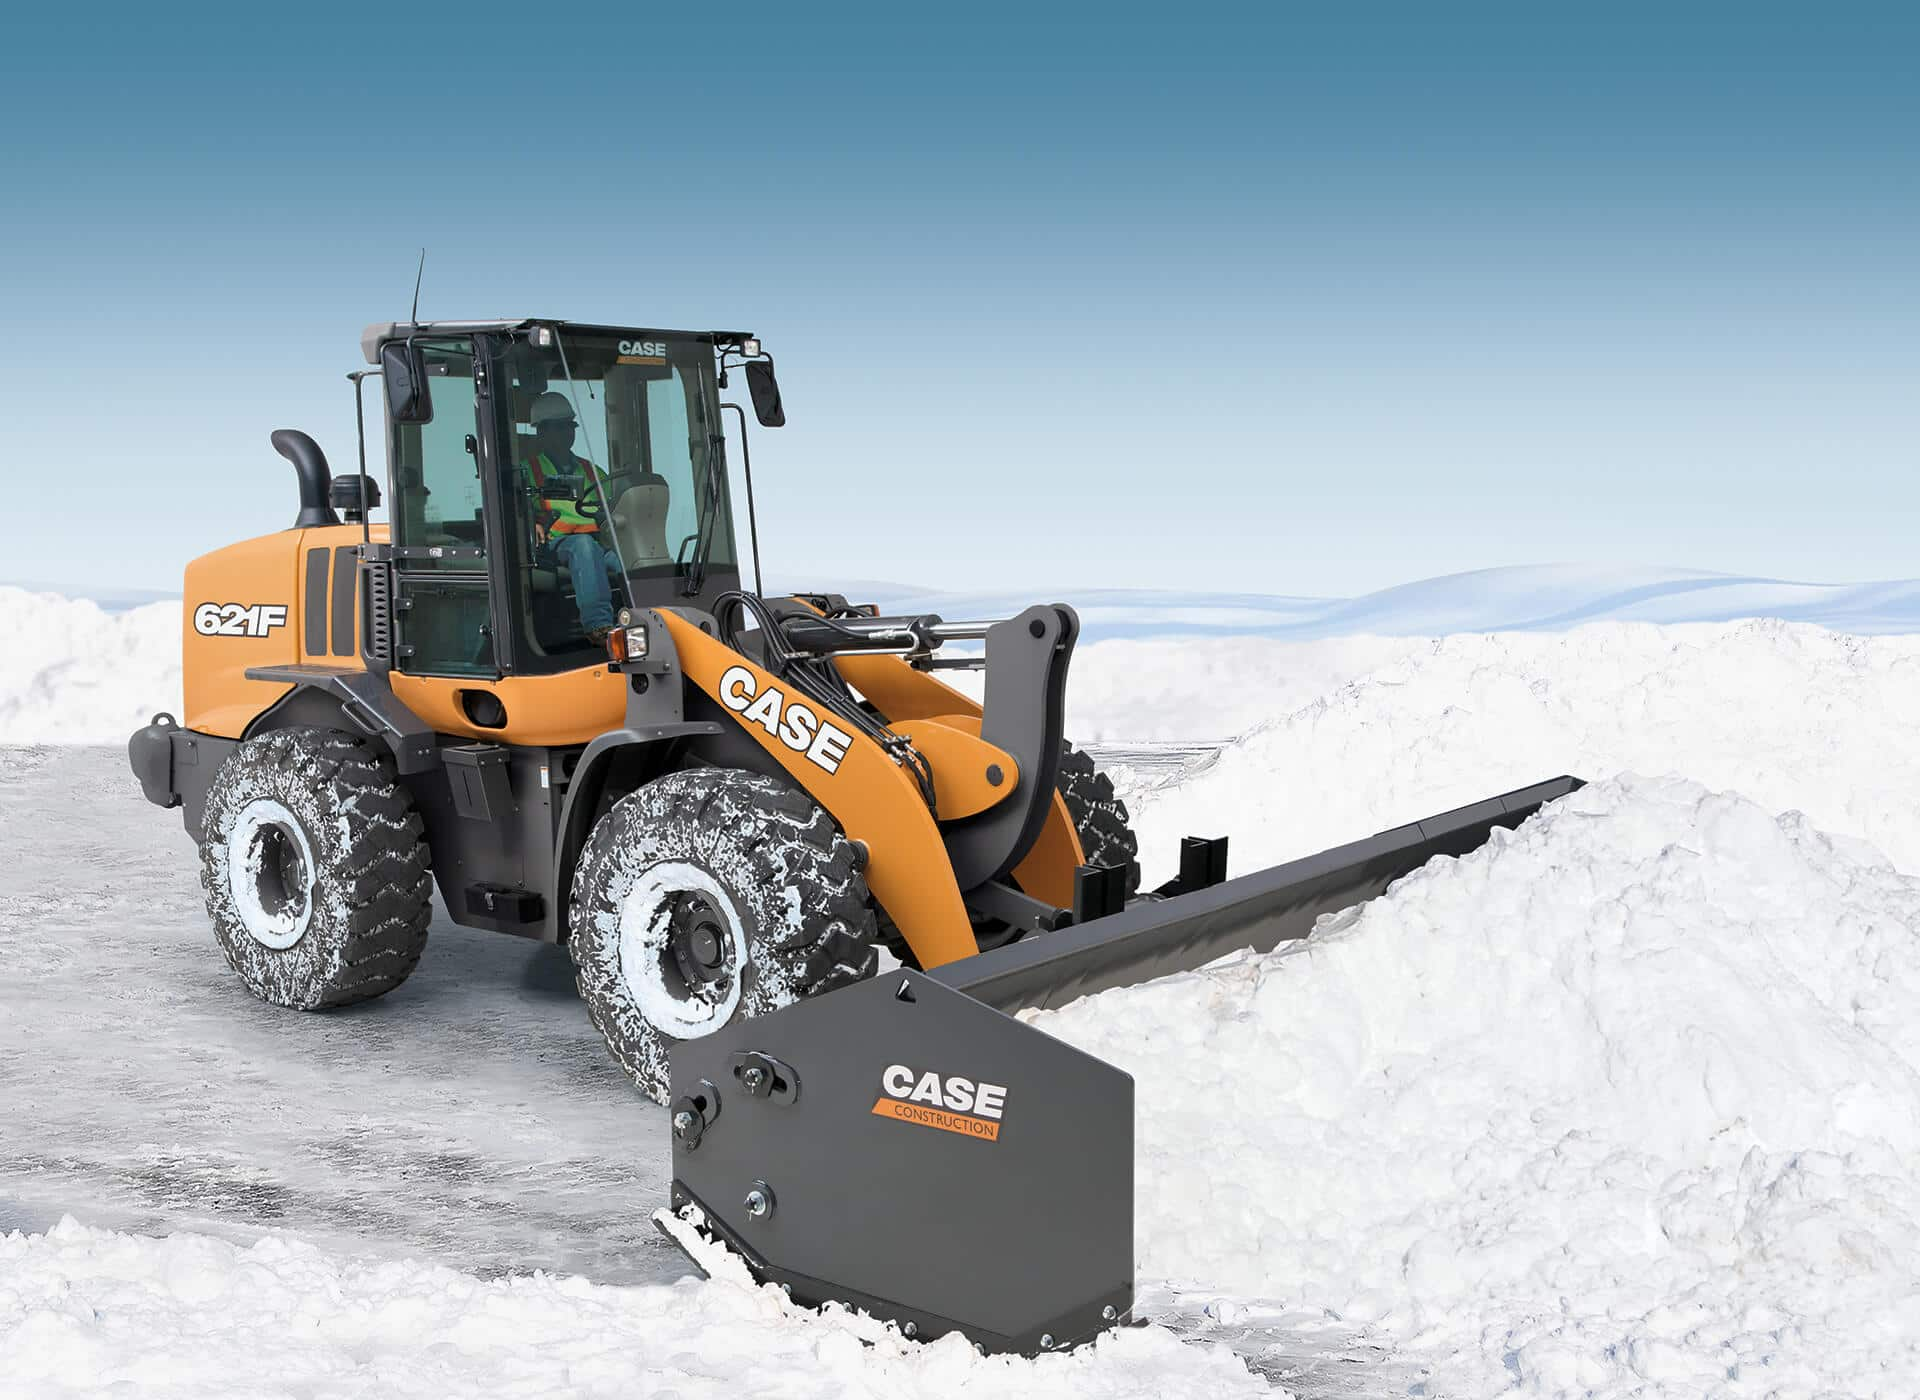 Case 621f Wheel Loader Construction Equipment Speed Electric Cooling Fan Wiring Diagram Youtube Gallery